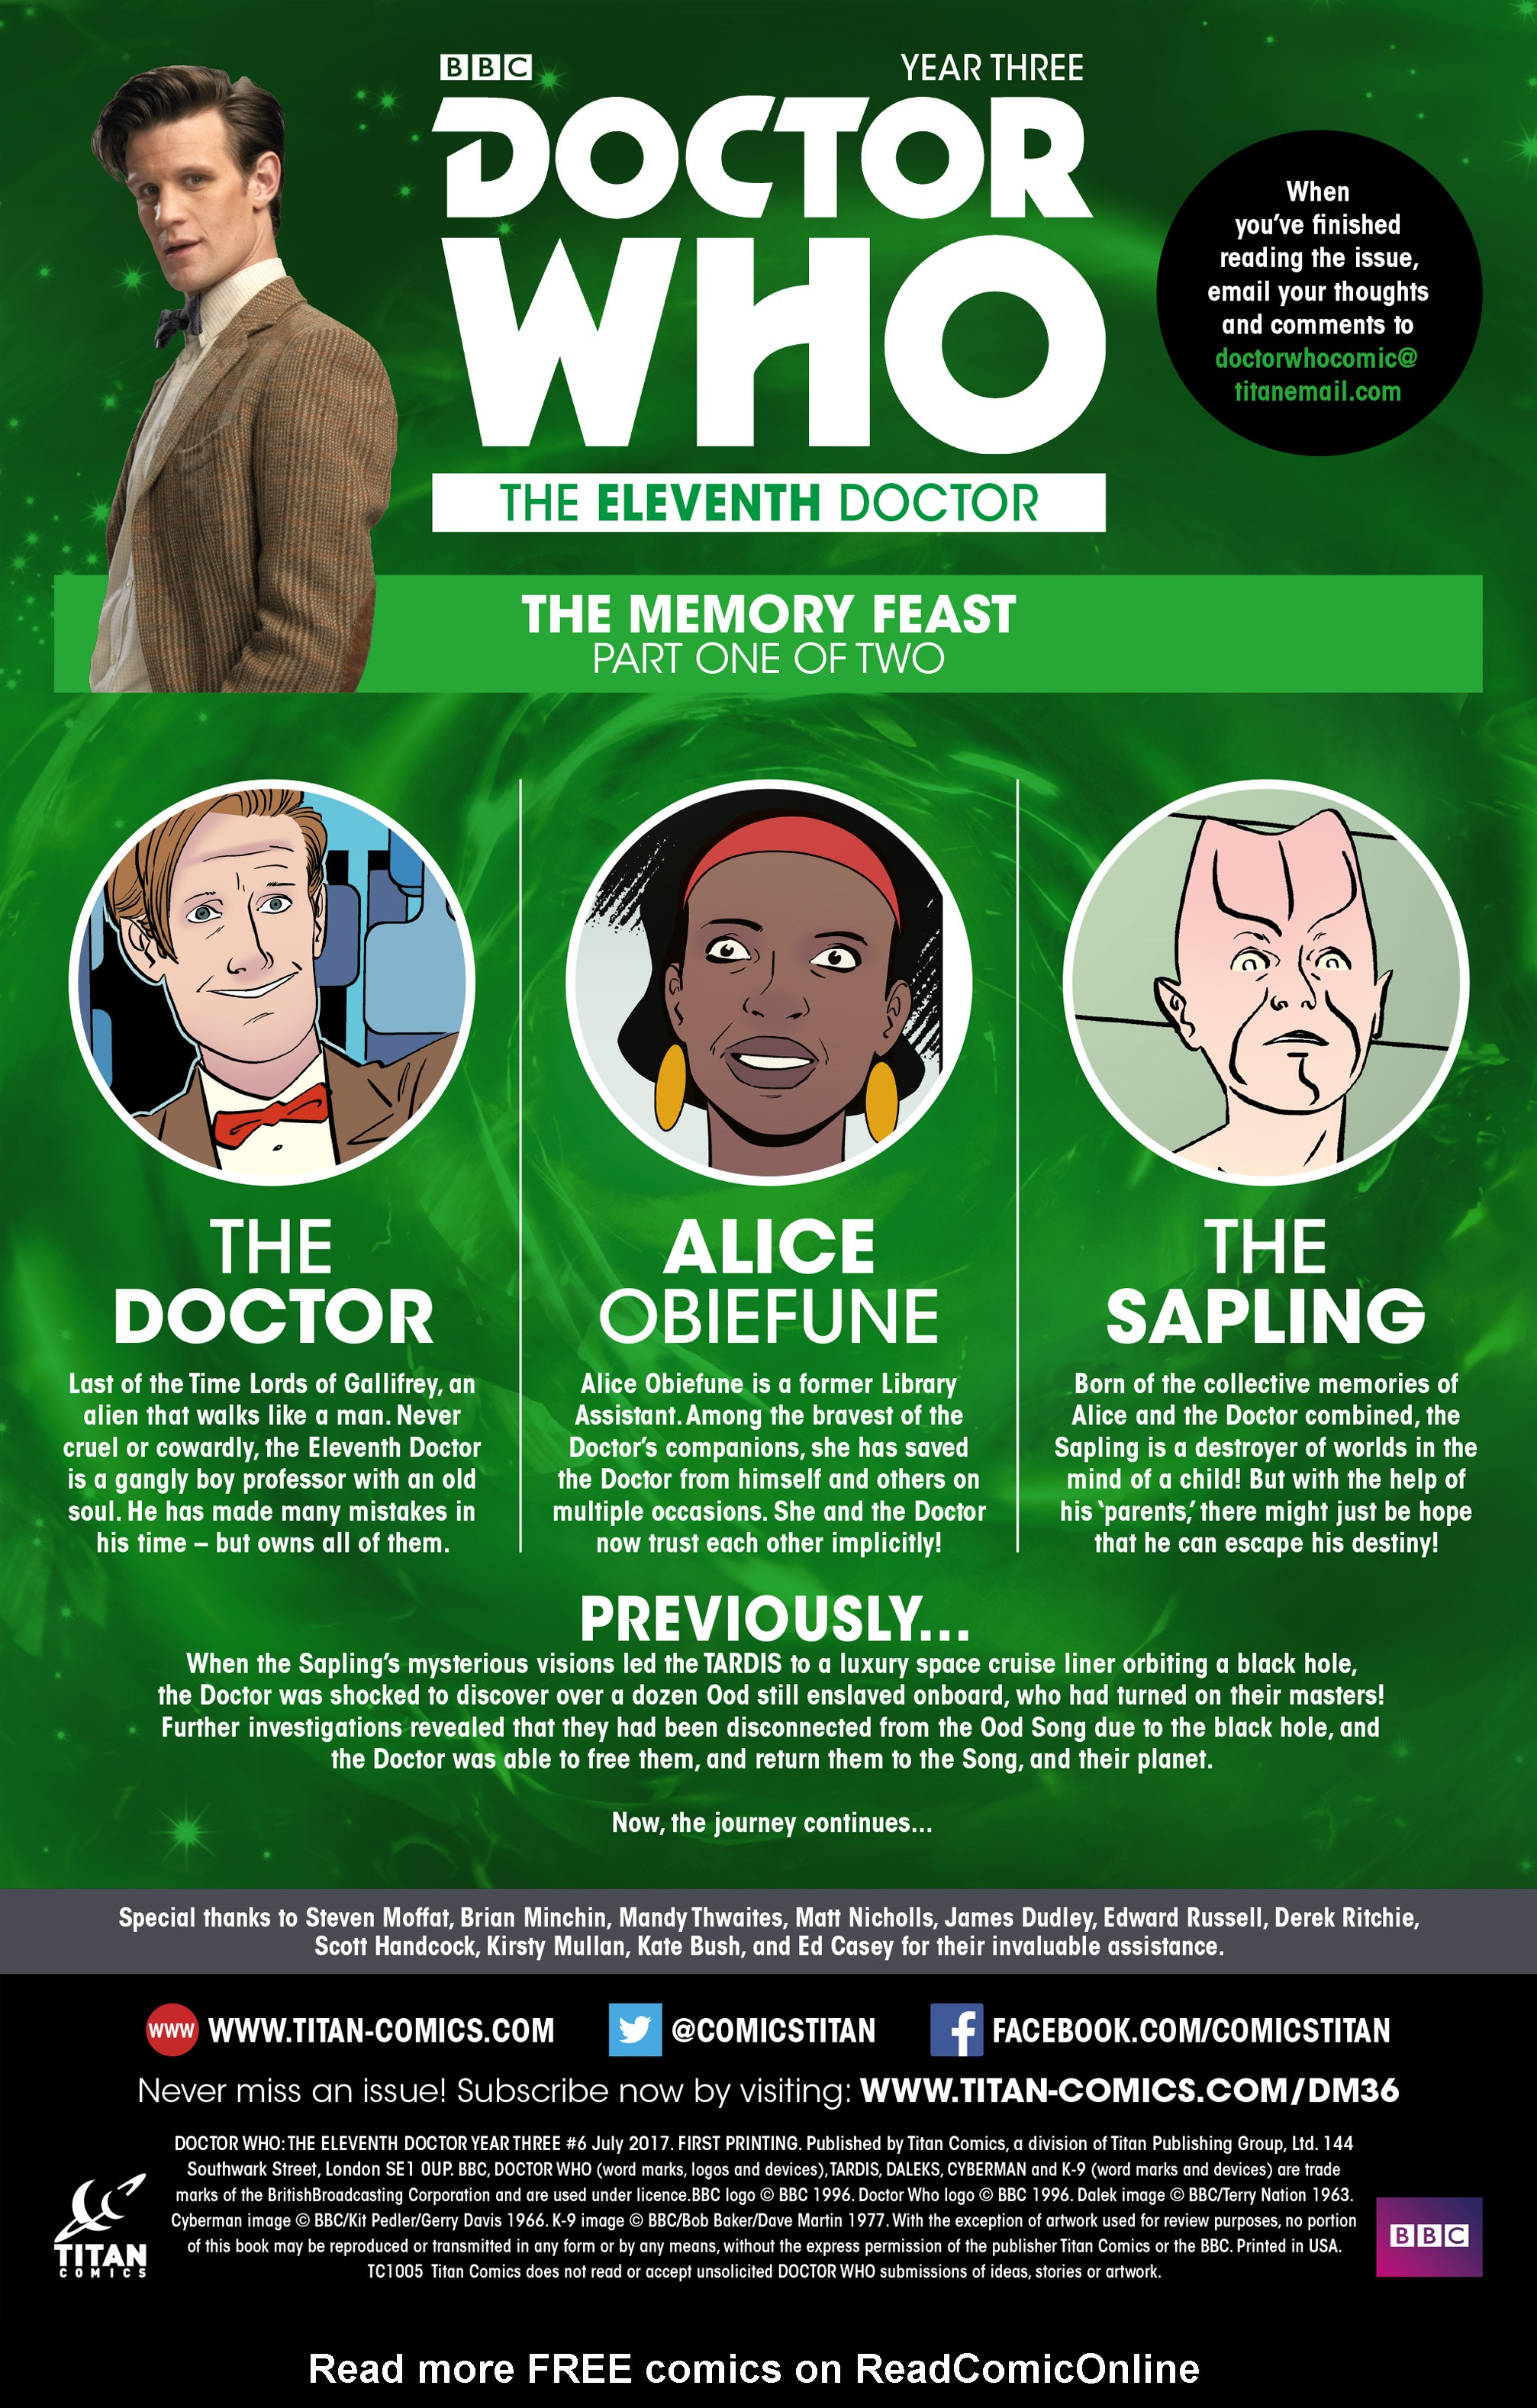 Read online Doctor Who: The Eleventh Doctor Year Three comic -  Issue #6 - 5